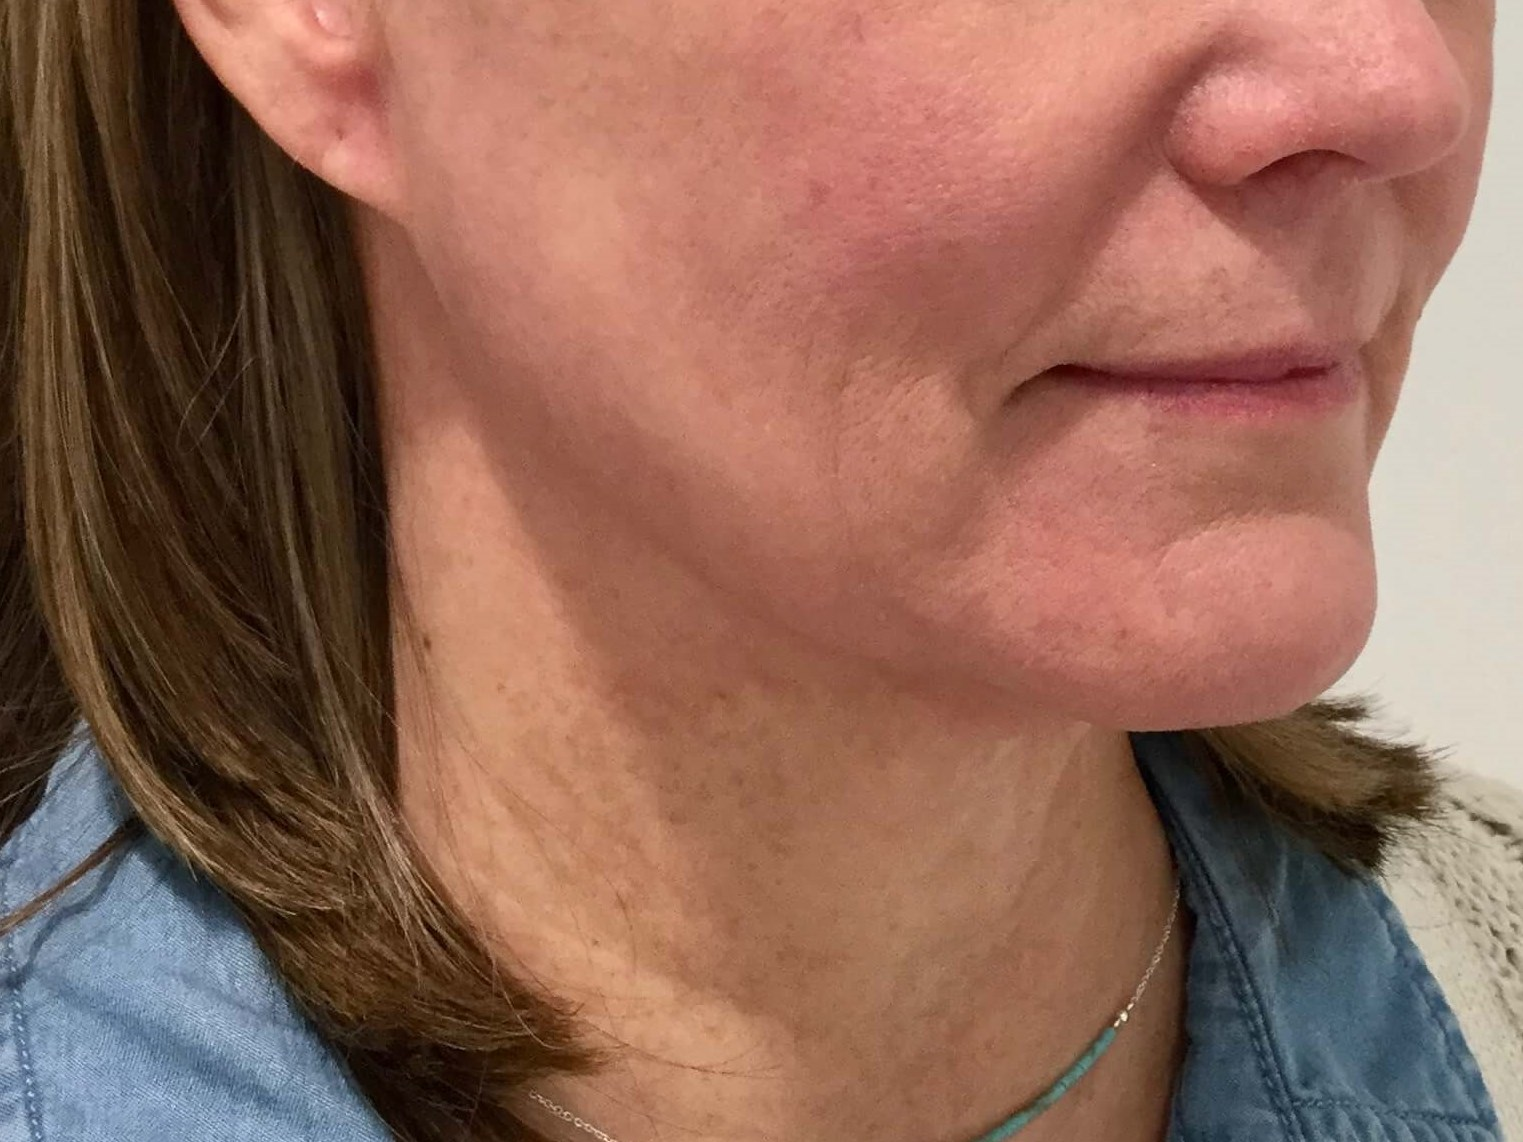 WOMAN IN DALLAS, TEXAS HAS FACELIFT PROCEDURE